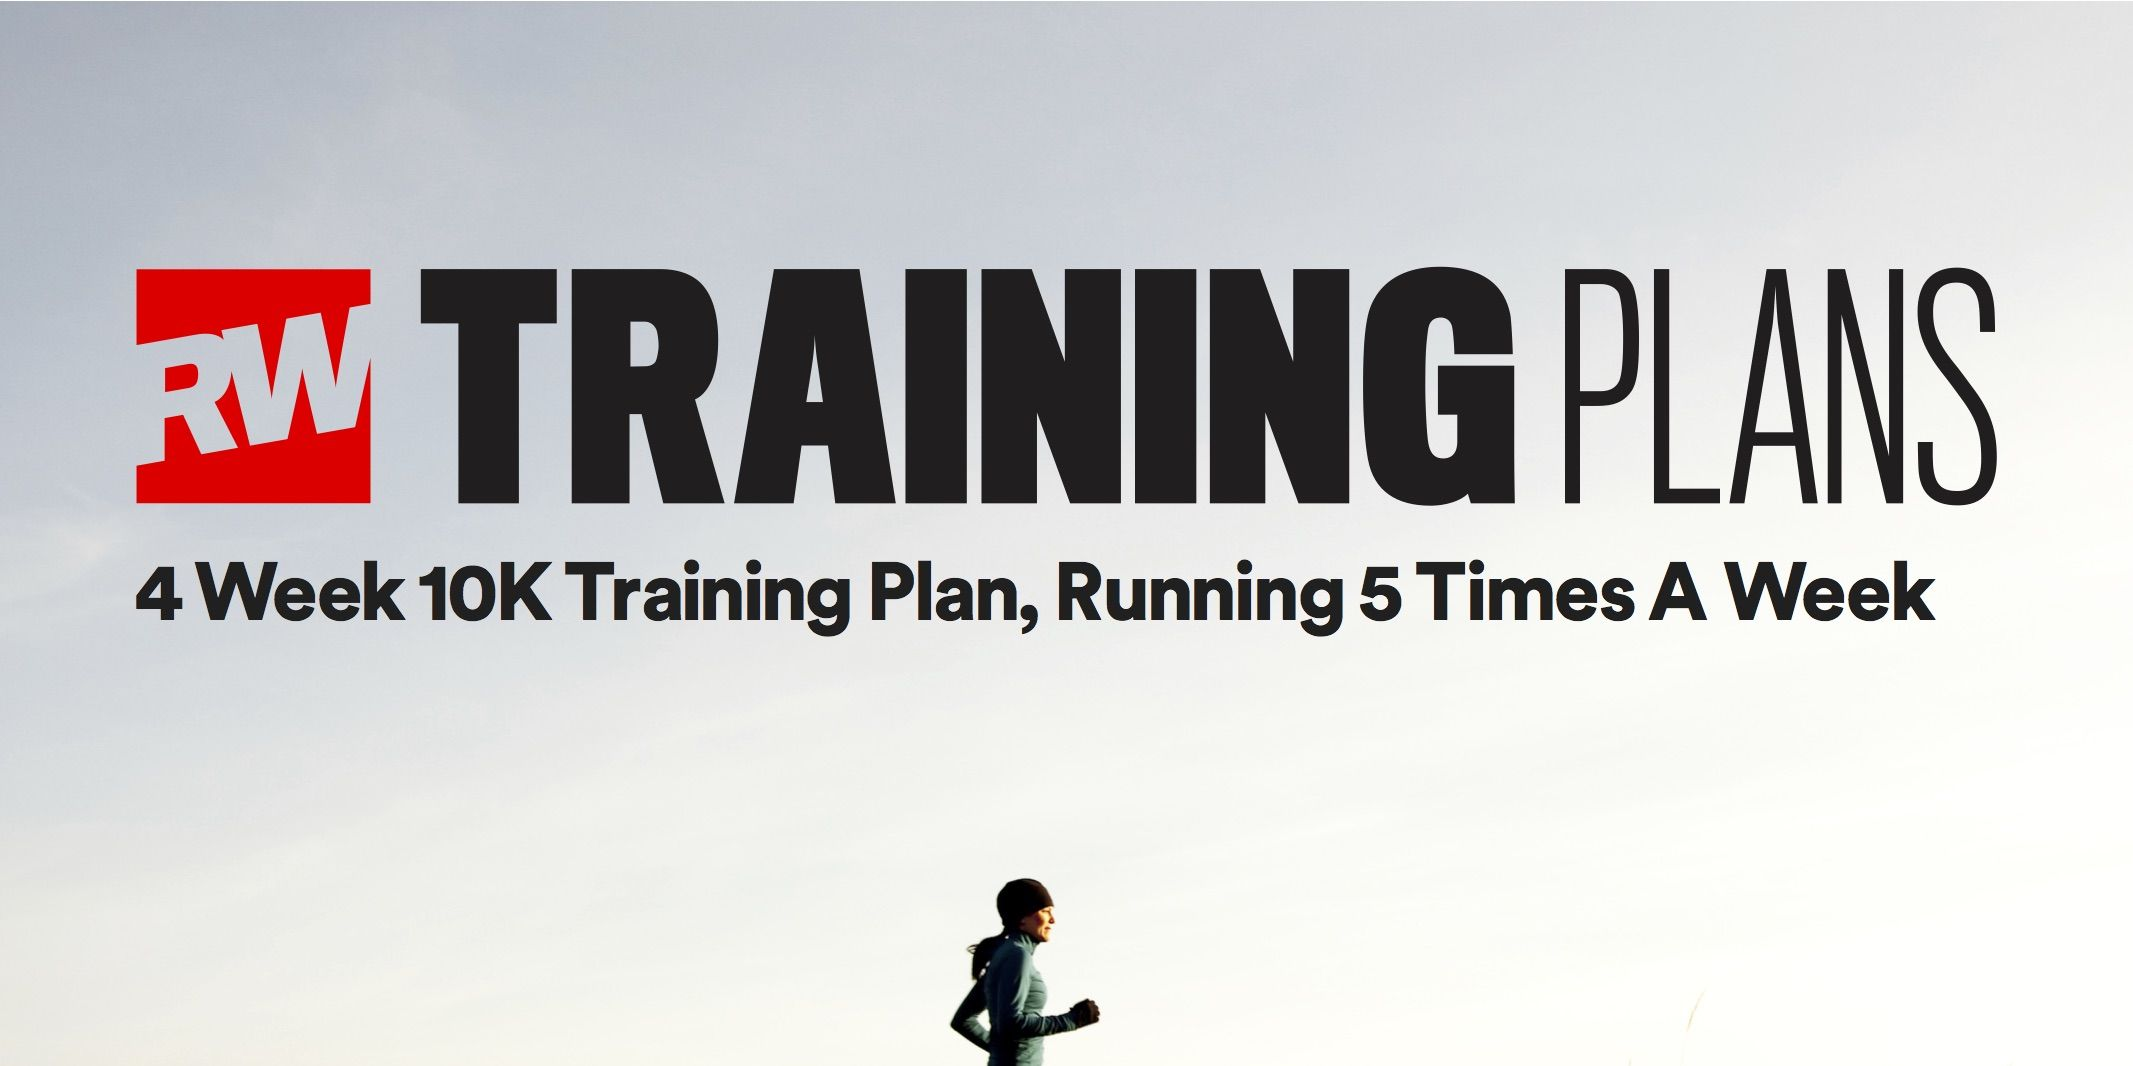 4 week 10K training plan, 5 days a week